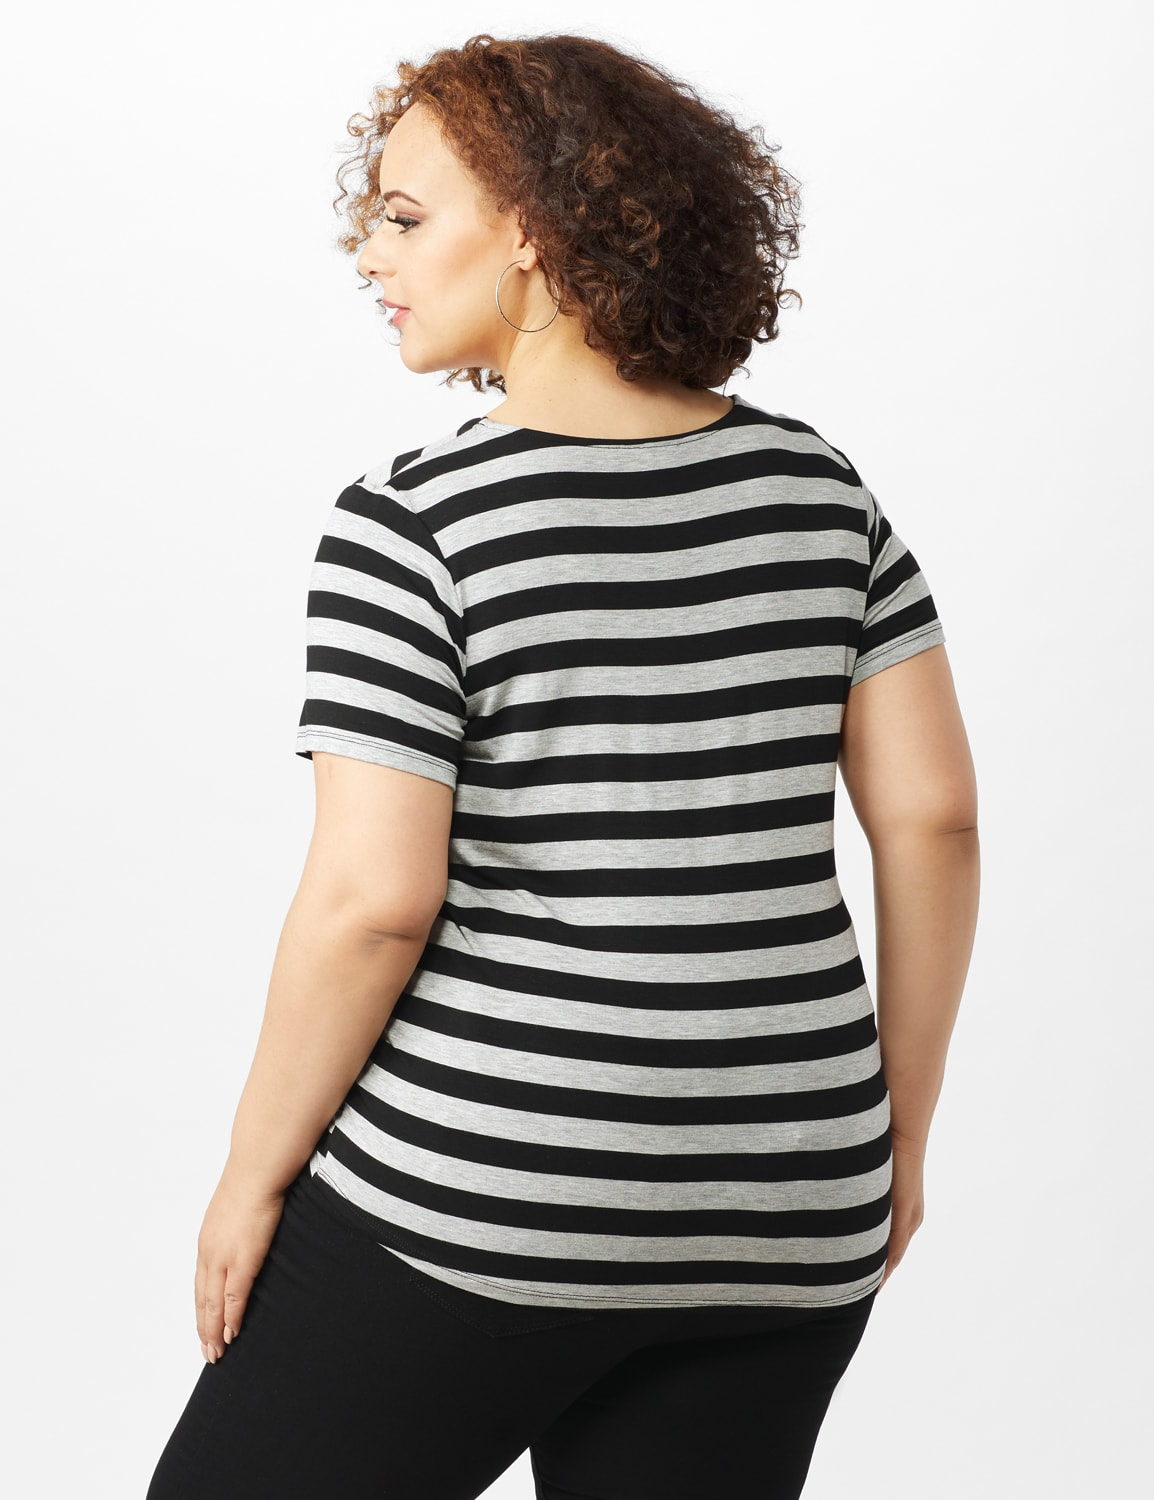 Mitered Stripe Tie Front Knit Top - Plus - Grey/Black - Back